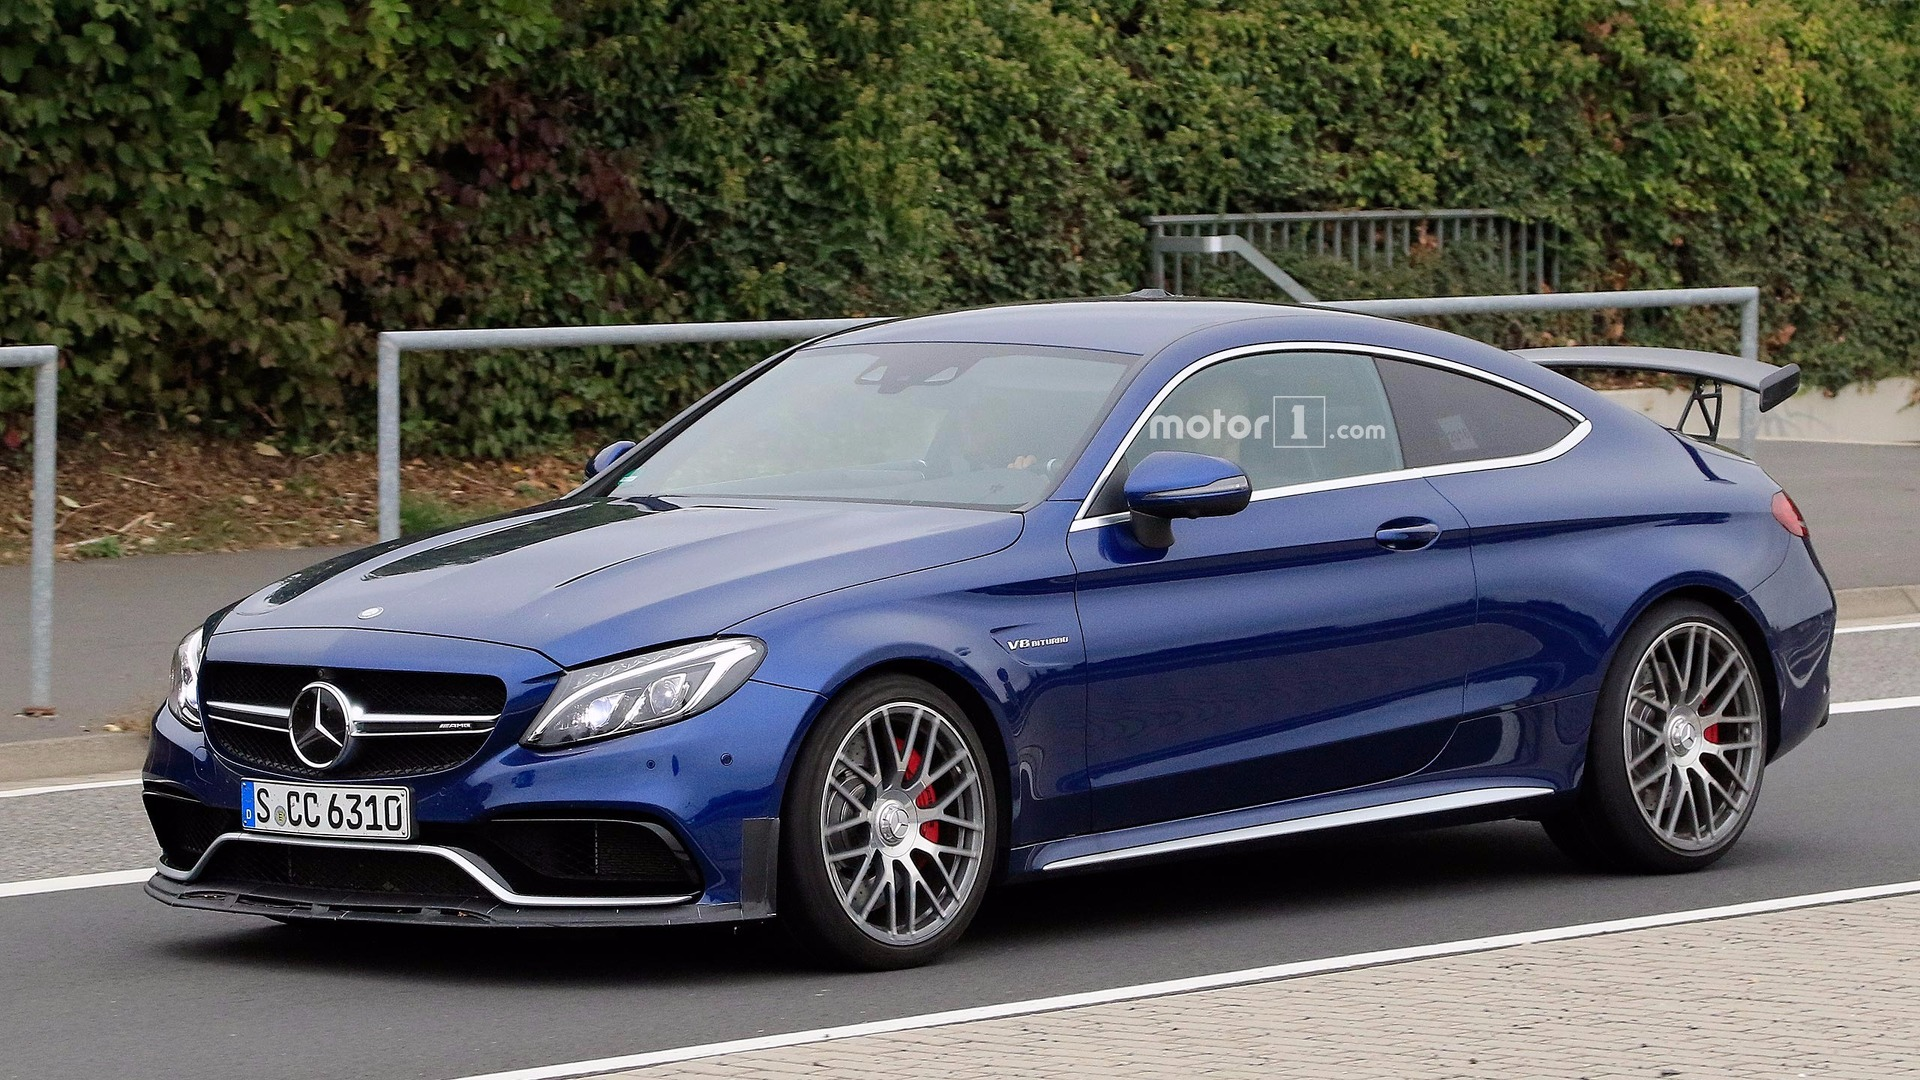 Mercedes amg c63 with all wheel drive ruled out this generation sciox Gallery